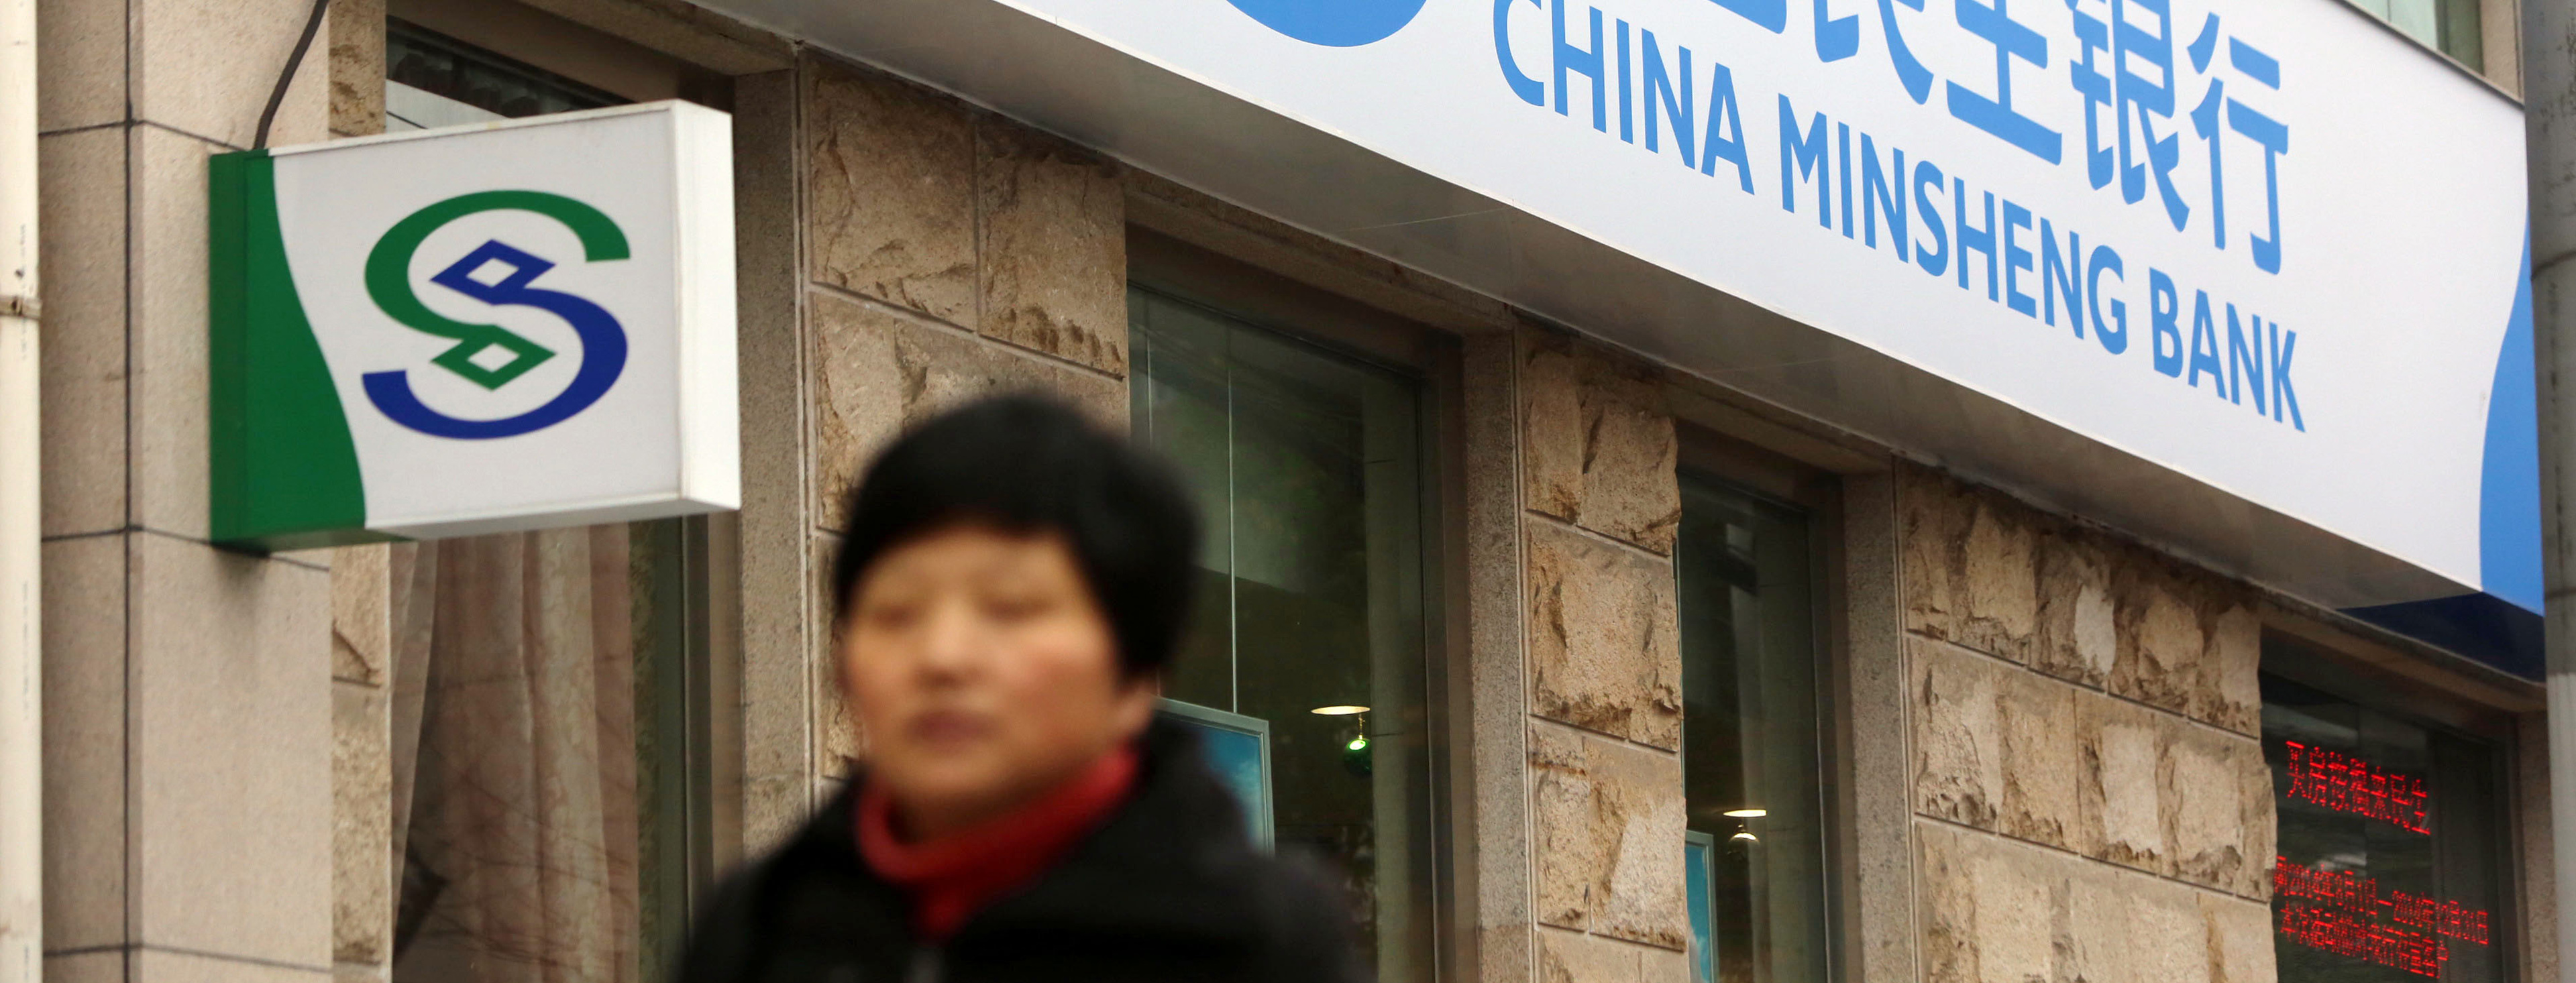 China Minsheng Bank profit rises 5.5% in Q1